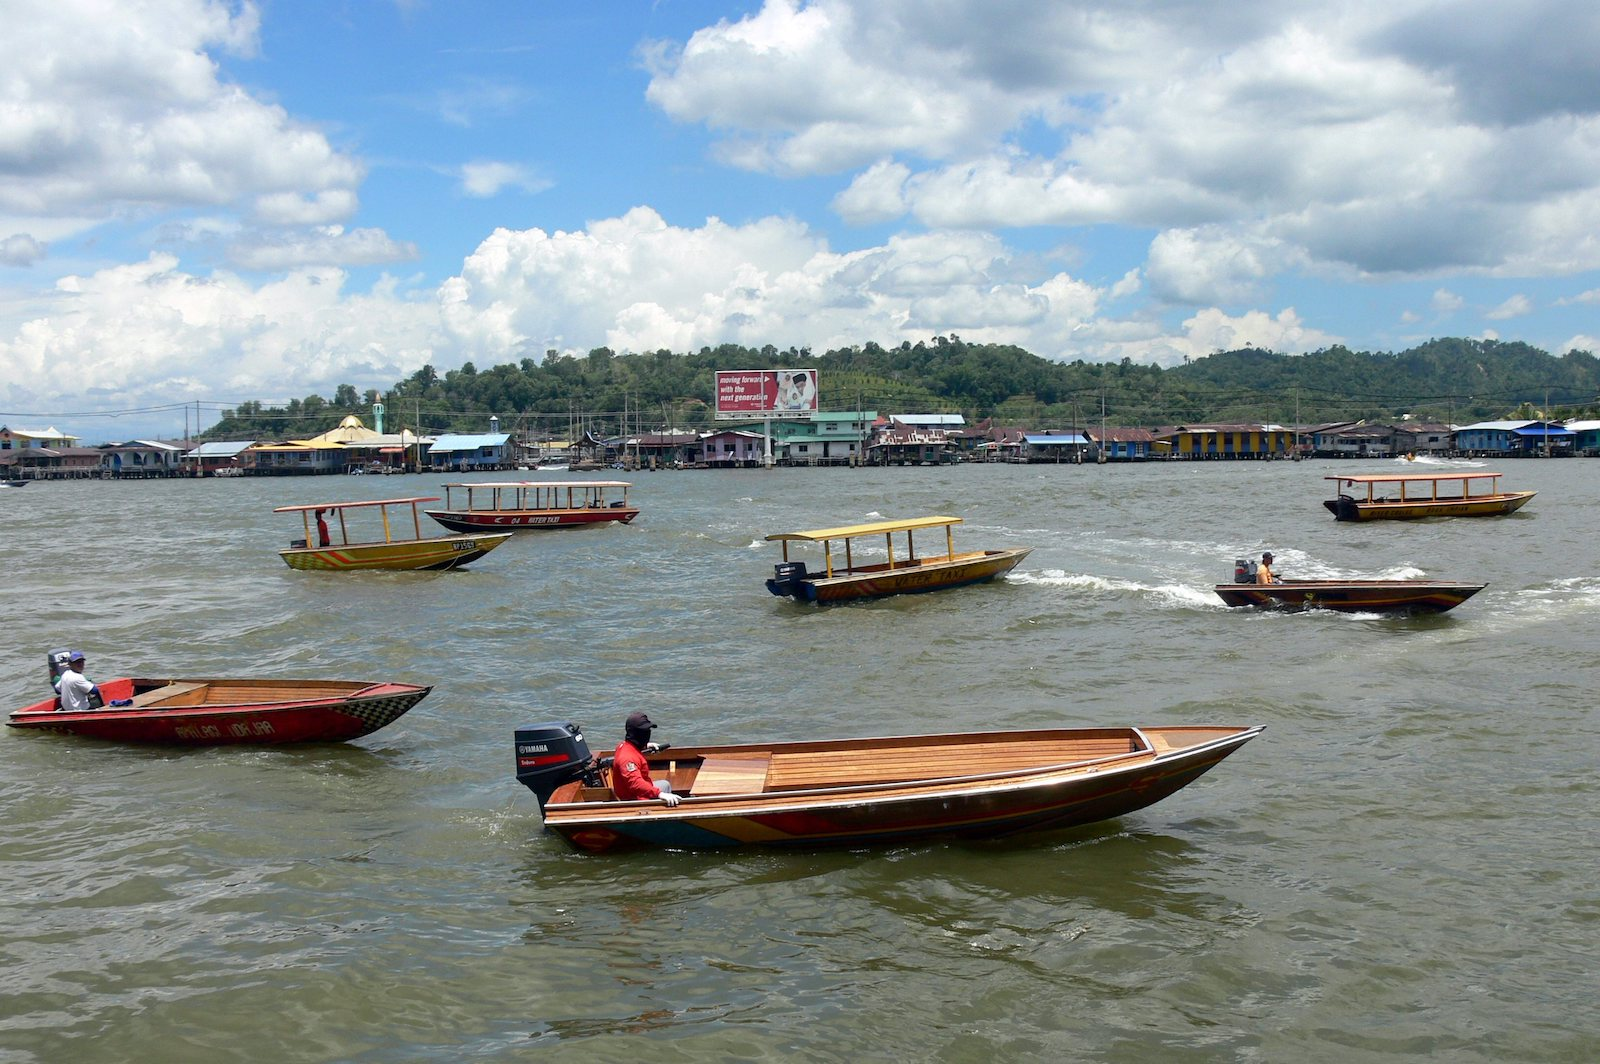 Brunei River with water taxis